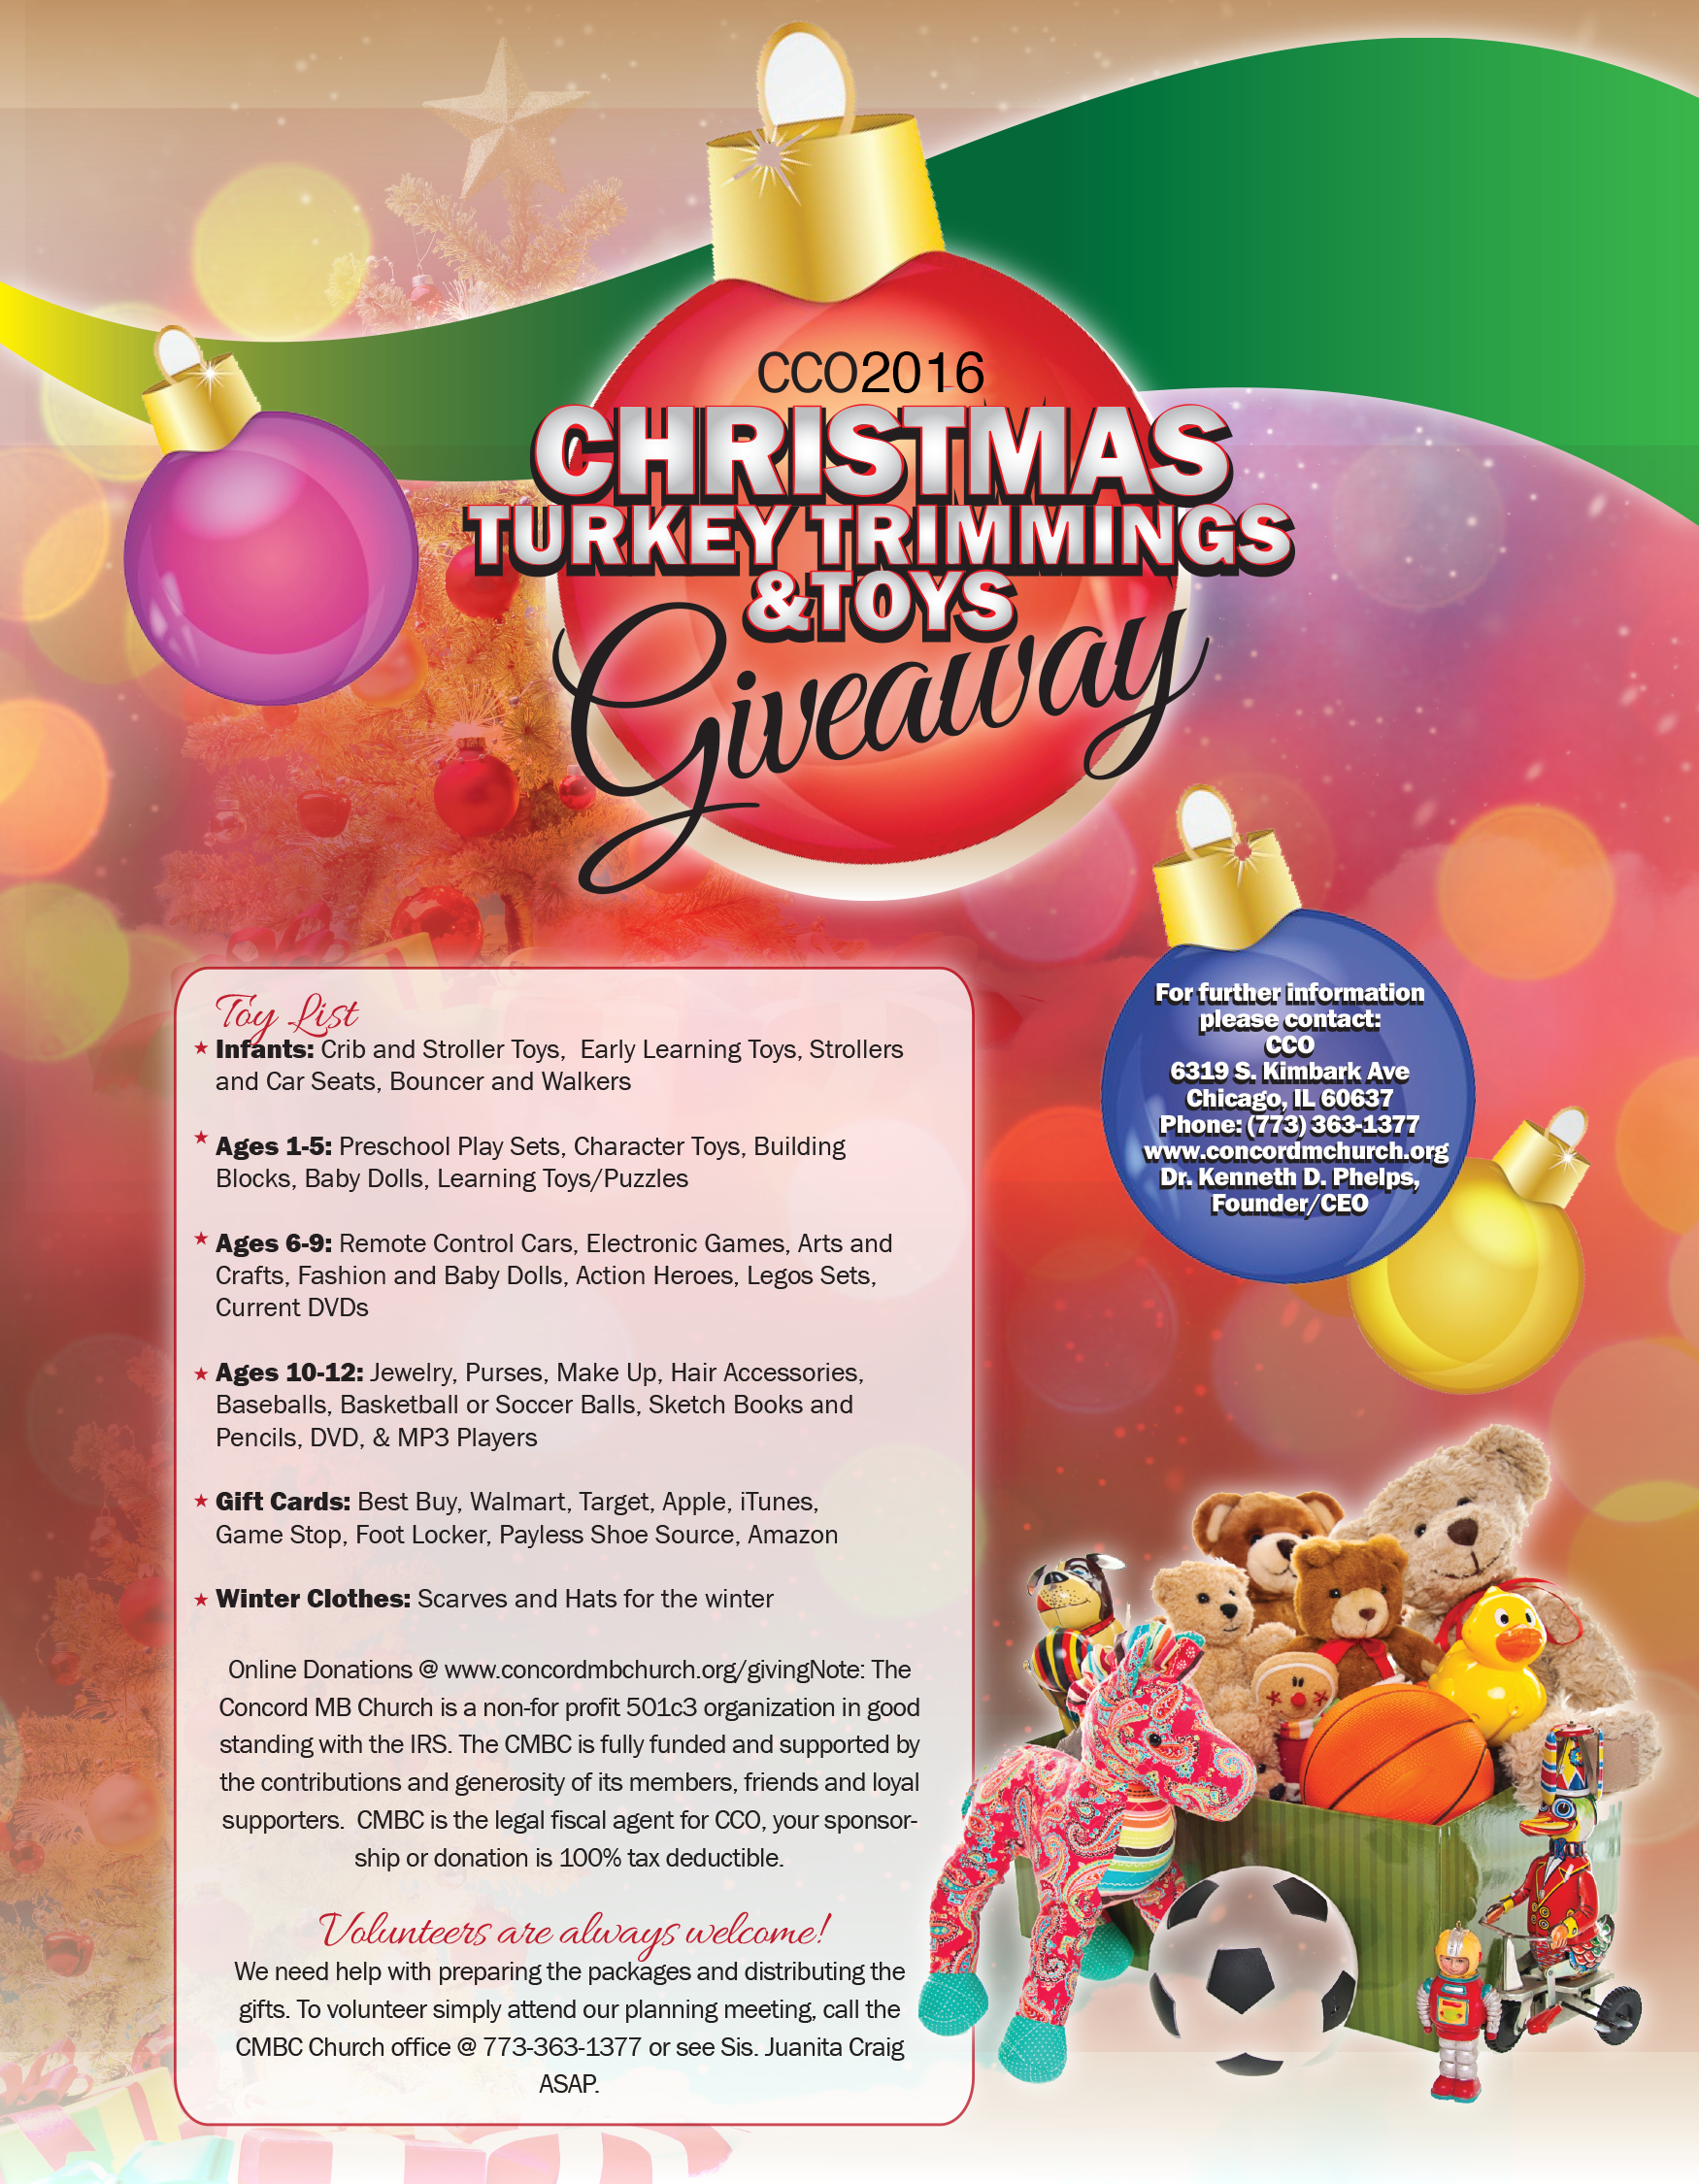 Christmas Giveaway Flyer.Cco 2016 Christmas Turkey Trimmings And Toys Giveaway Dr